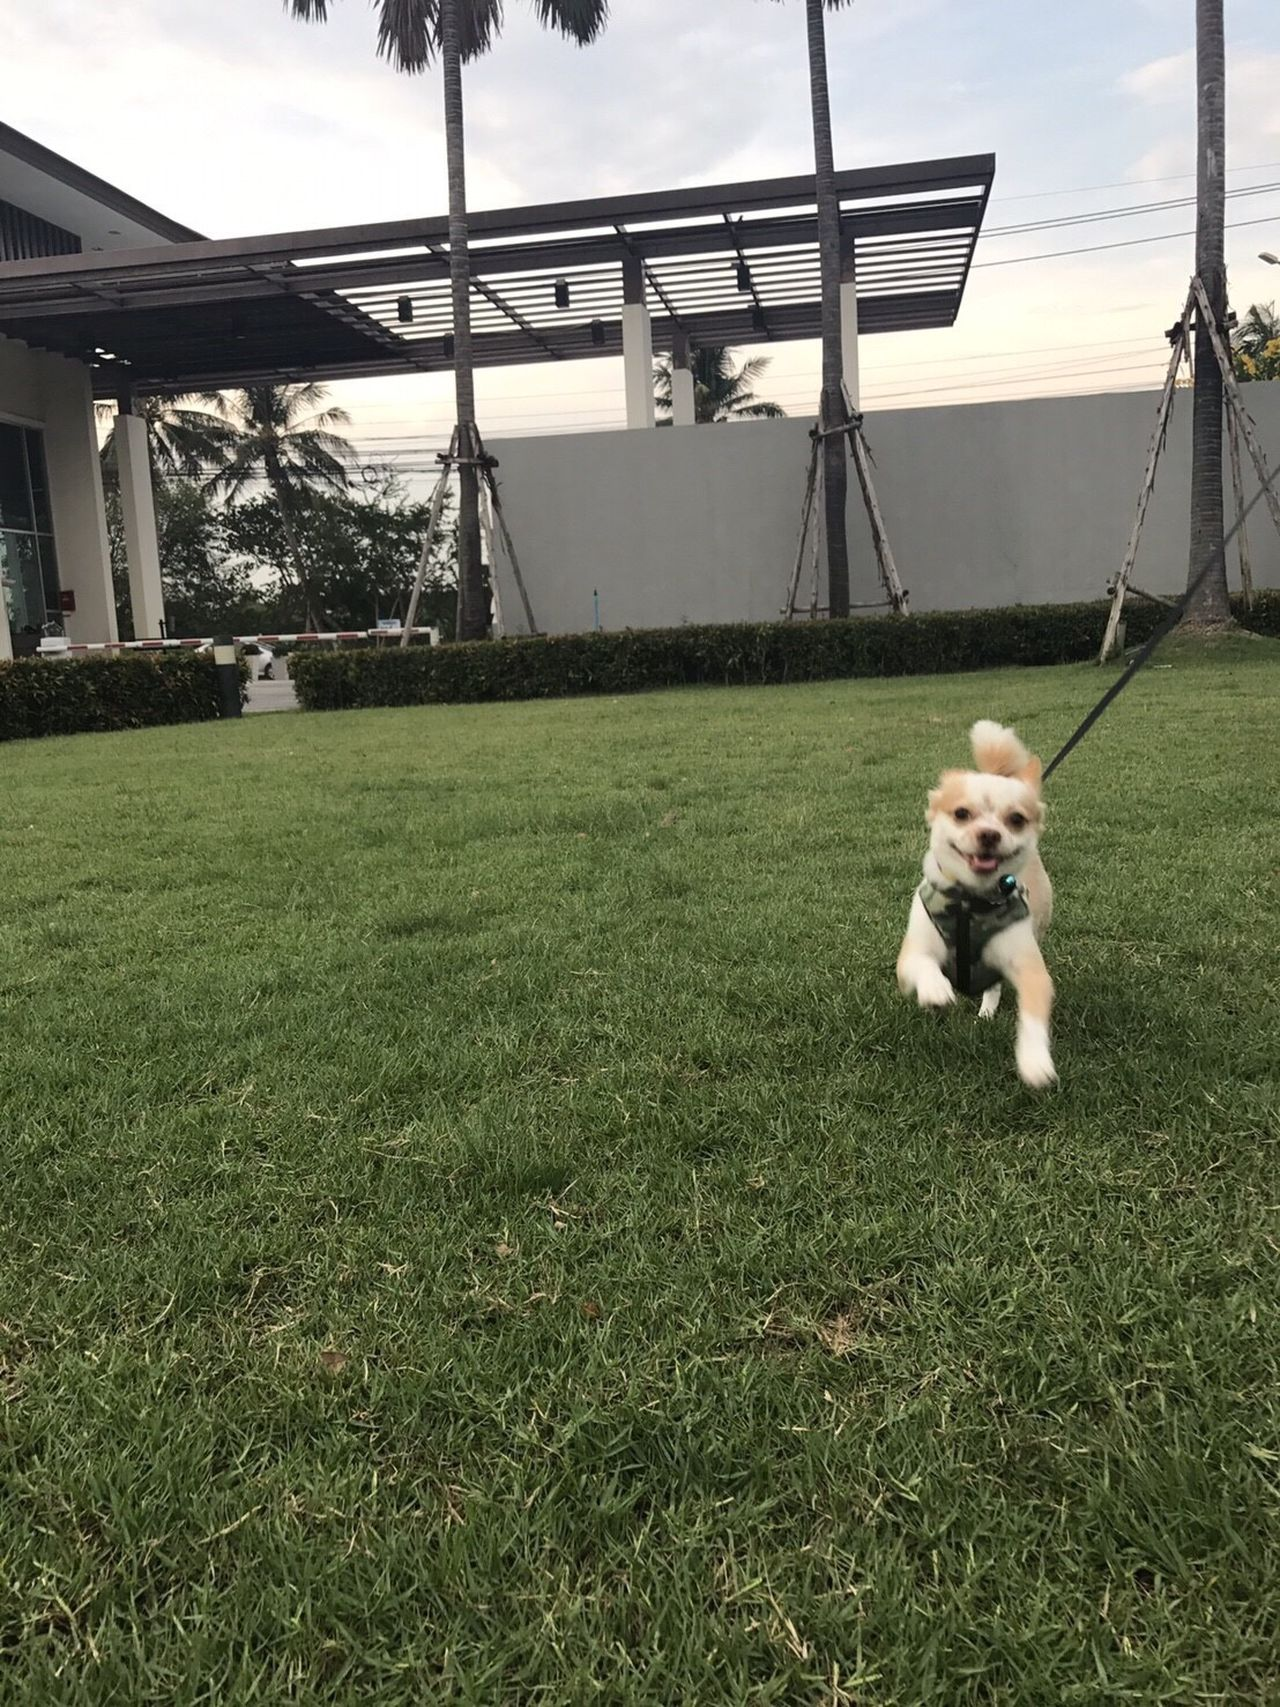 Grass Dog Pets Mammal Green Color One Animal Domestic Animals Field Outdoors Growth Day No People Running Dog EyeEmNewHere Chihuahua The Great Outdoors - 2017 EyeEm Awards Built Structure Building Exterior Architecture Full Length Nature Soccer Field Sky